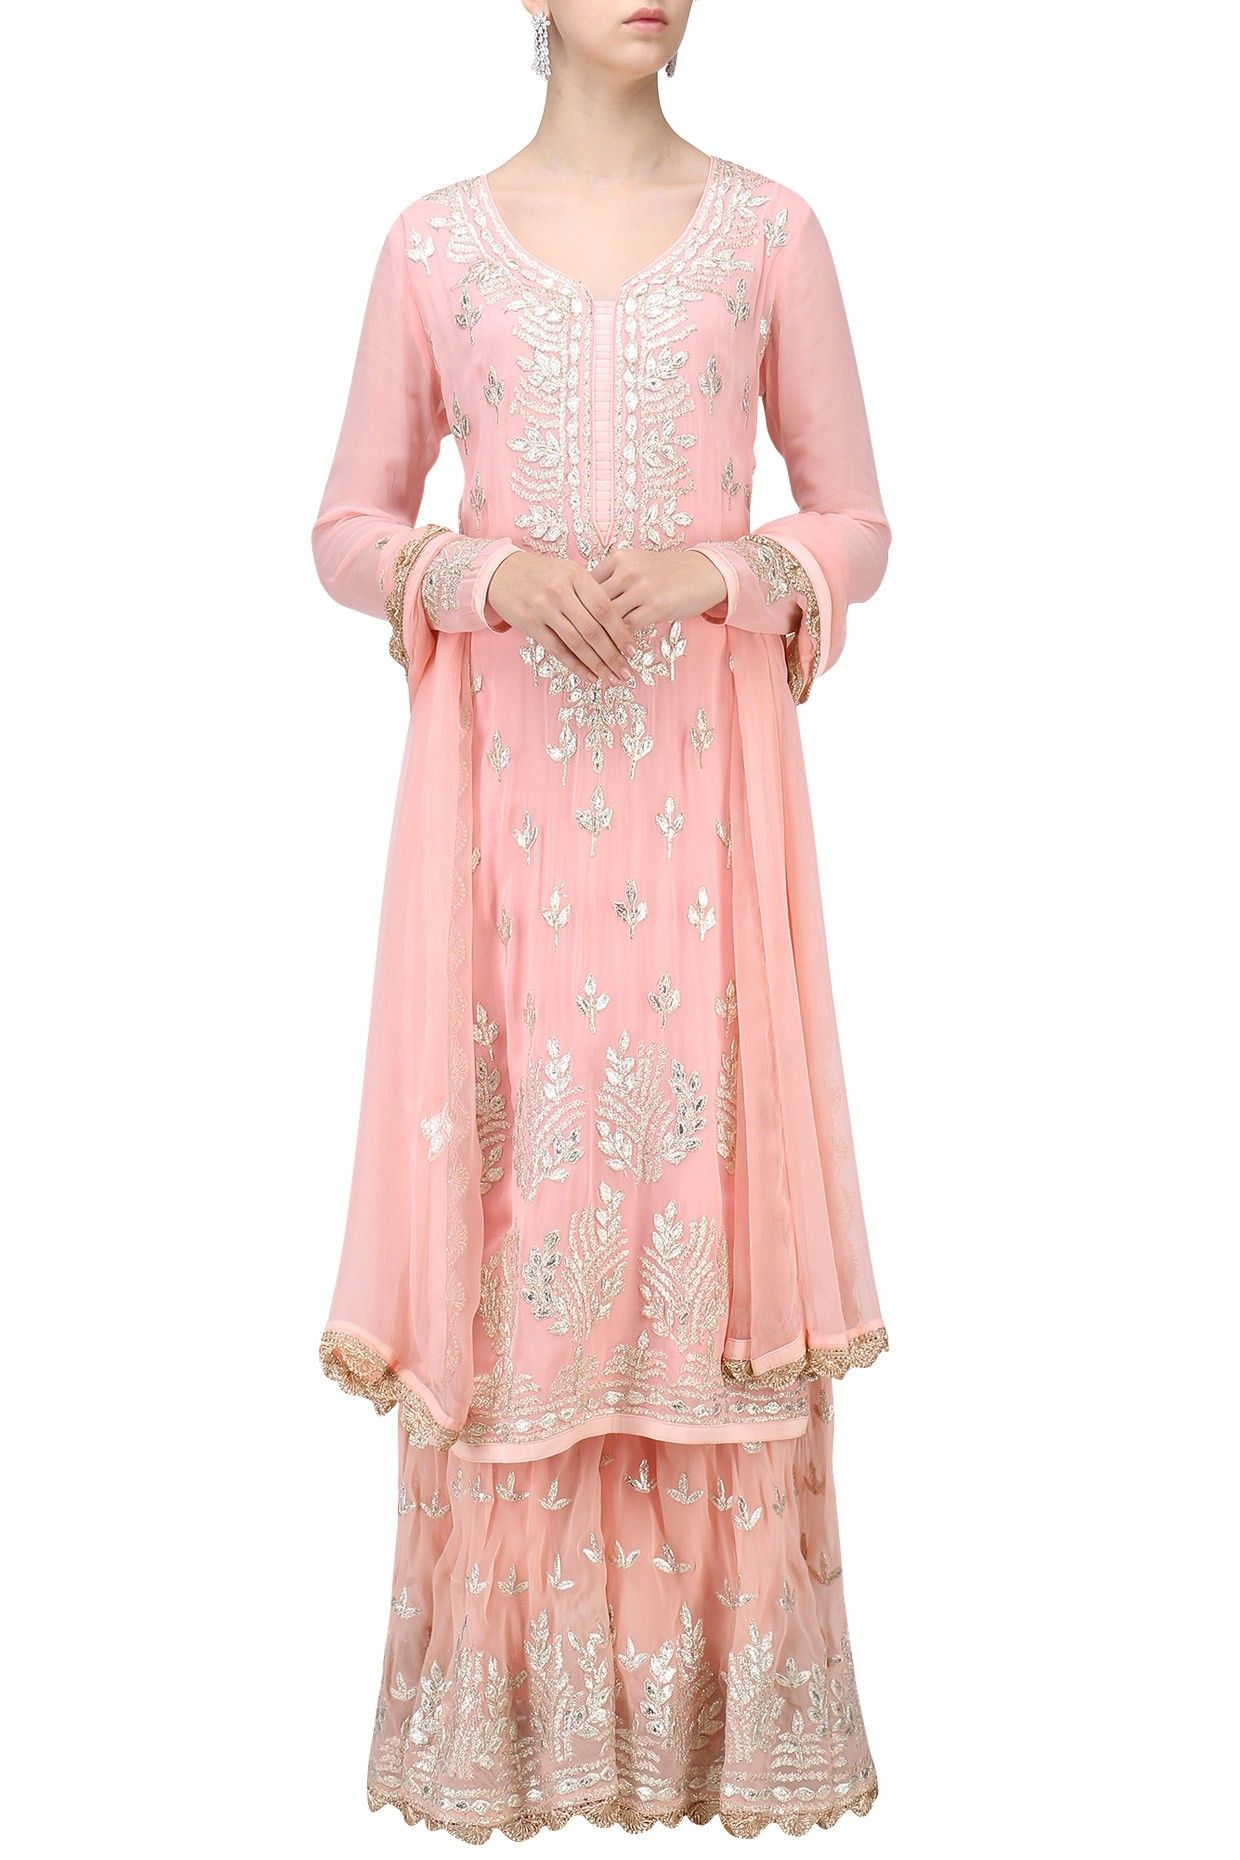 9c77876c64ad6b Baby pink gota patti embroidered kurta with sharara set available only at  Pernia's Pop Up Shop.